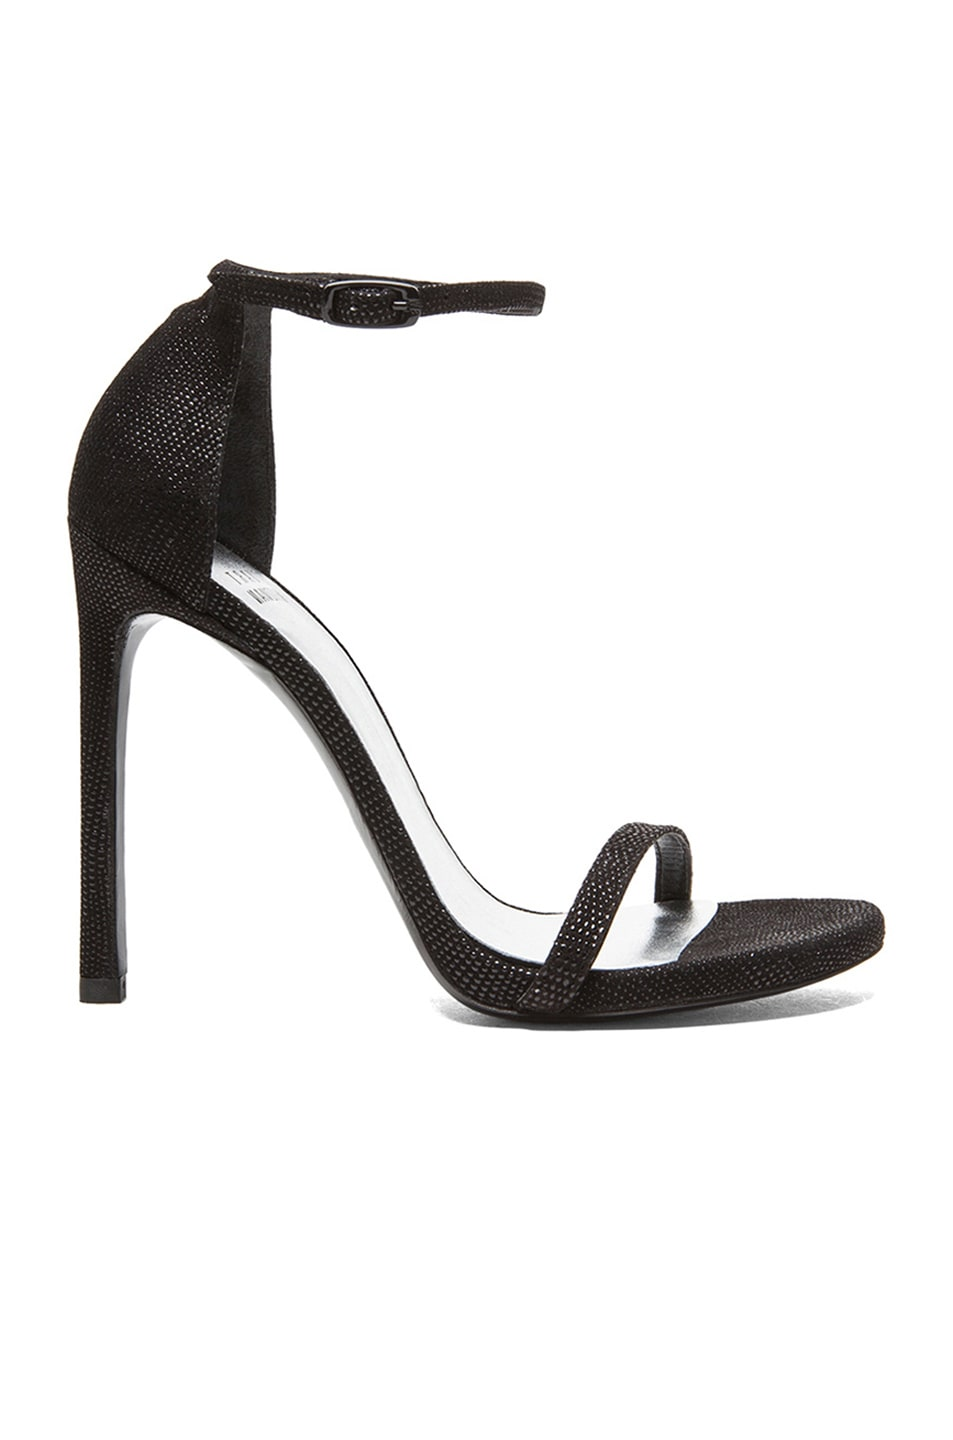 Image 1 of Stuart Weitzman Nudist Textured Nappa Leather Heels in Black Goosebump